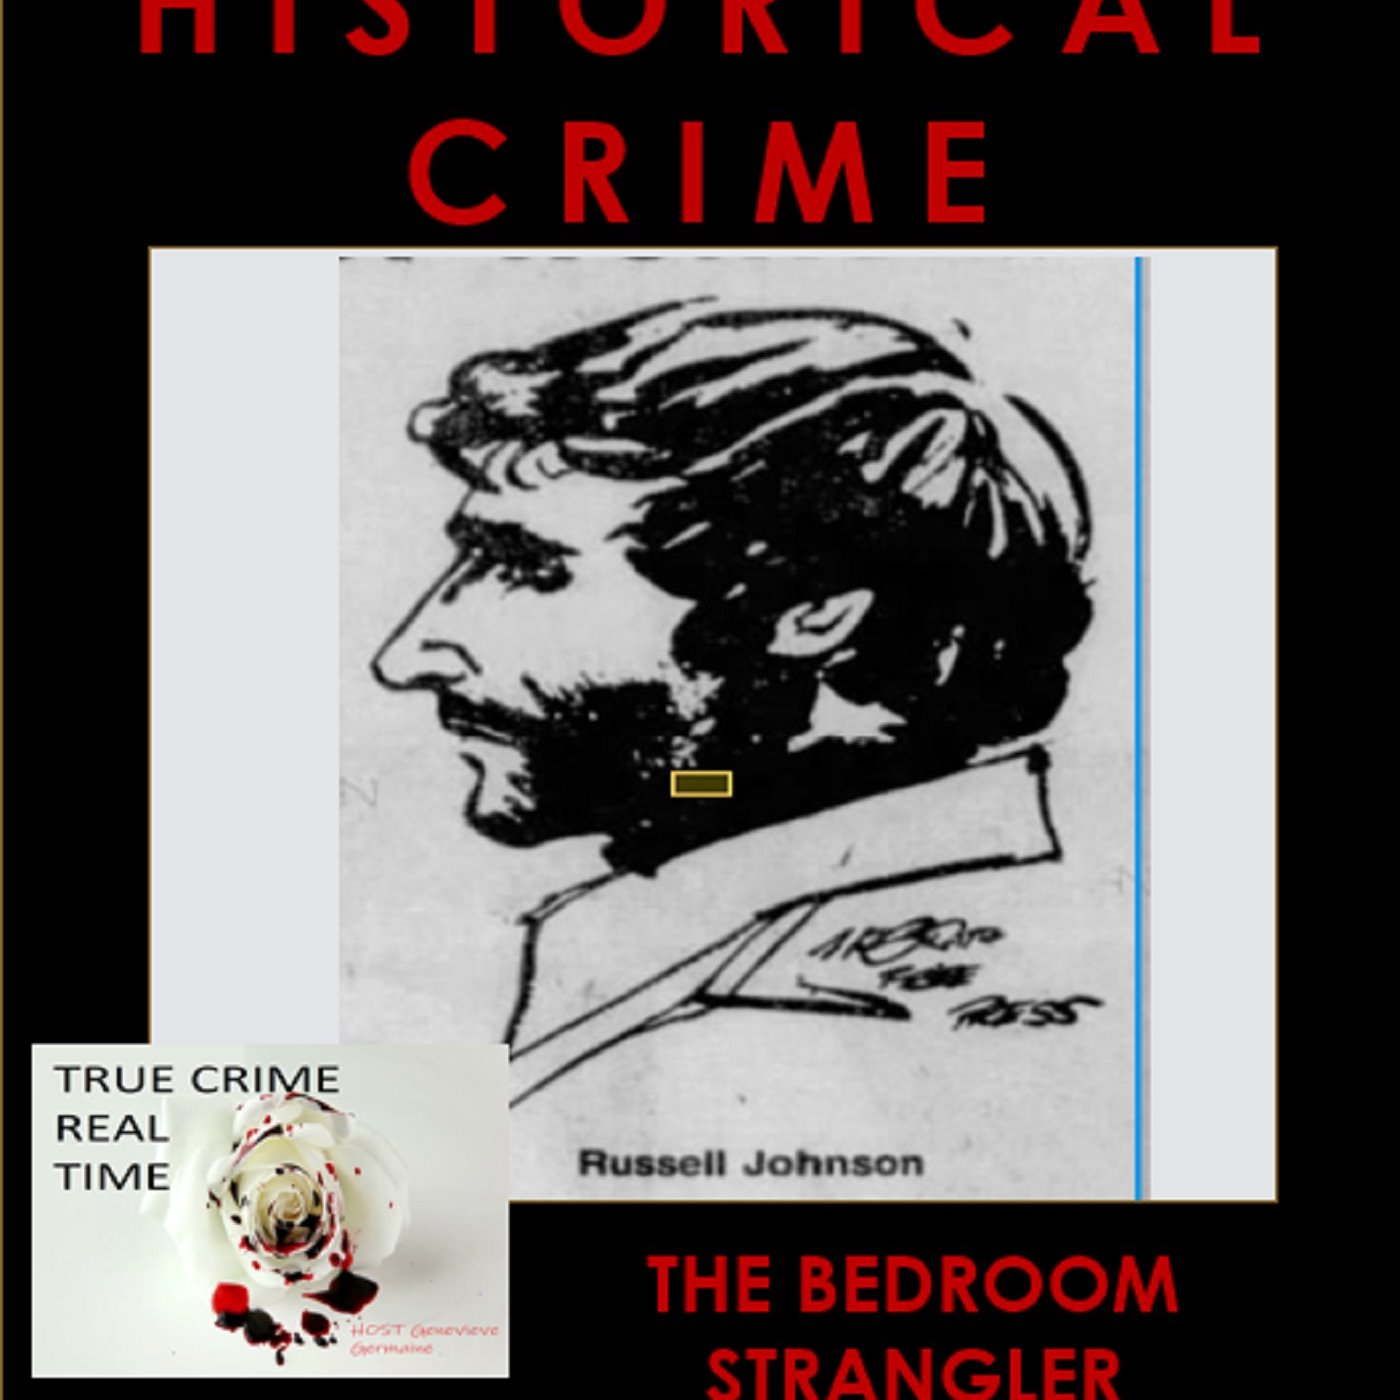 #27 - London's Sordid Past - Part 2 - The Bedroom Strangler